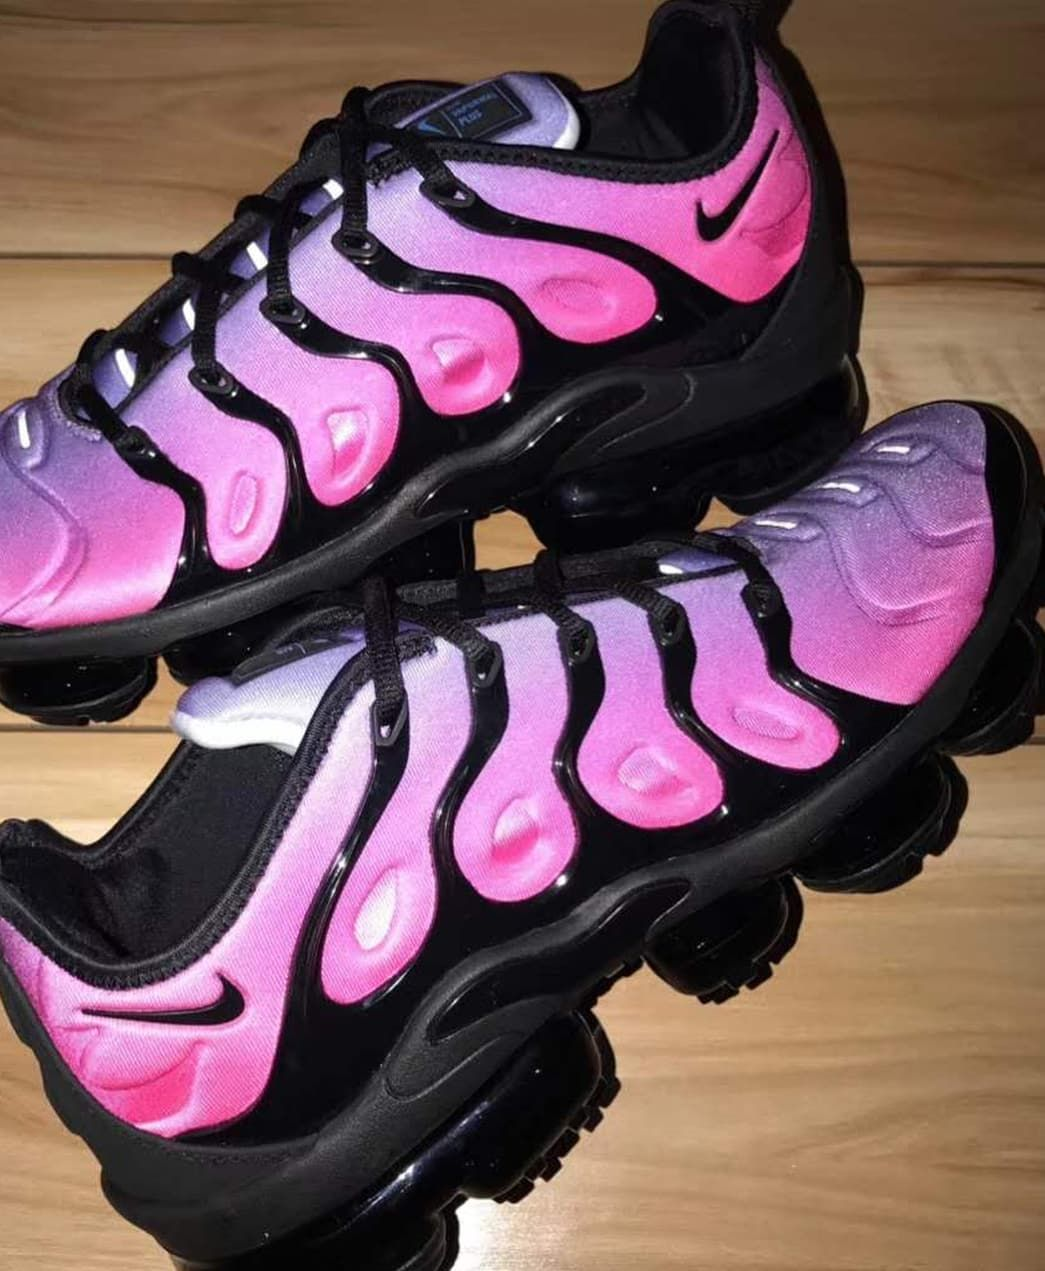 Be True Nike Vapormax Plus Dropping Next Month Shoes Trainers Sneakers Shoes